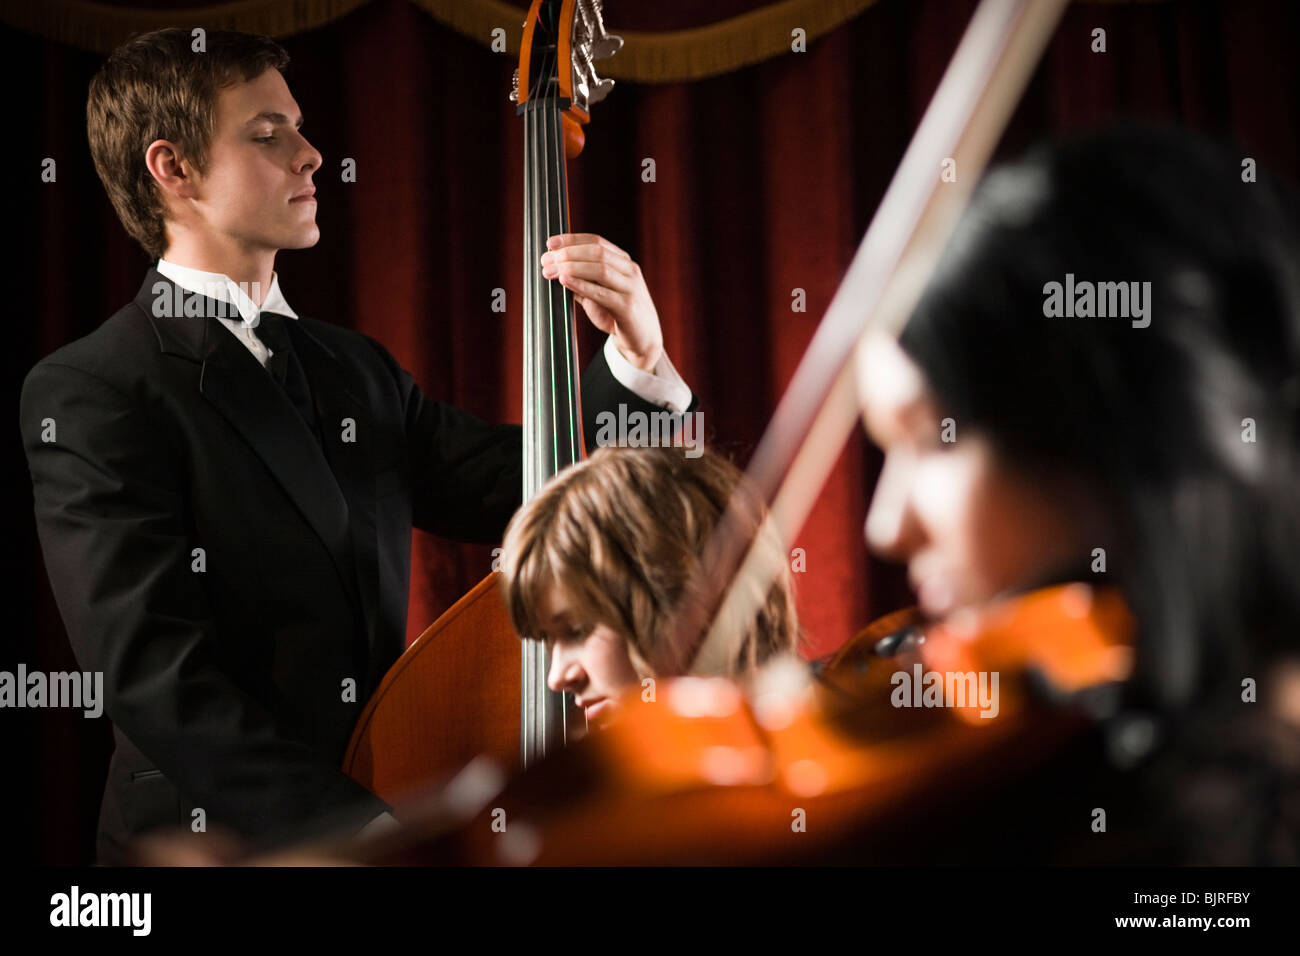 Three young musicians playing in orchestra - Stock Image